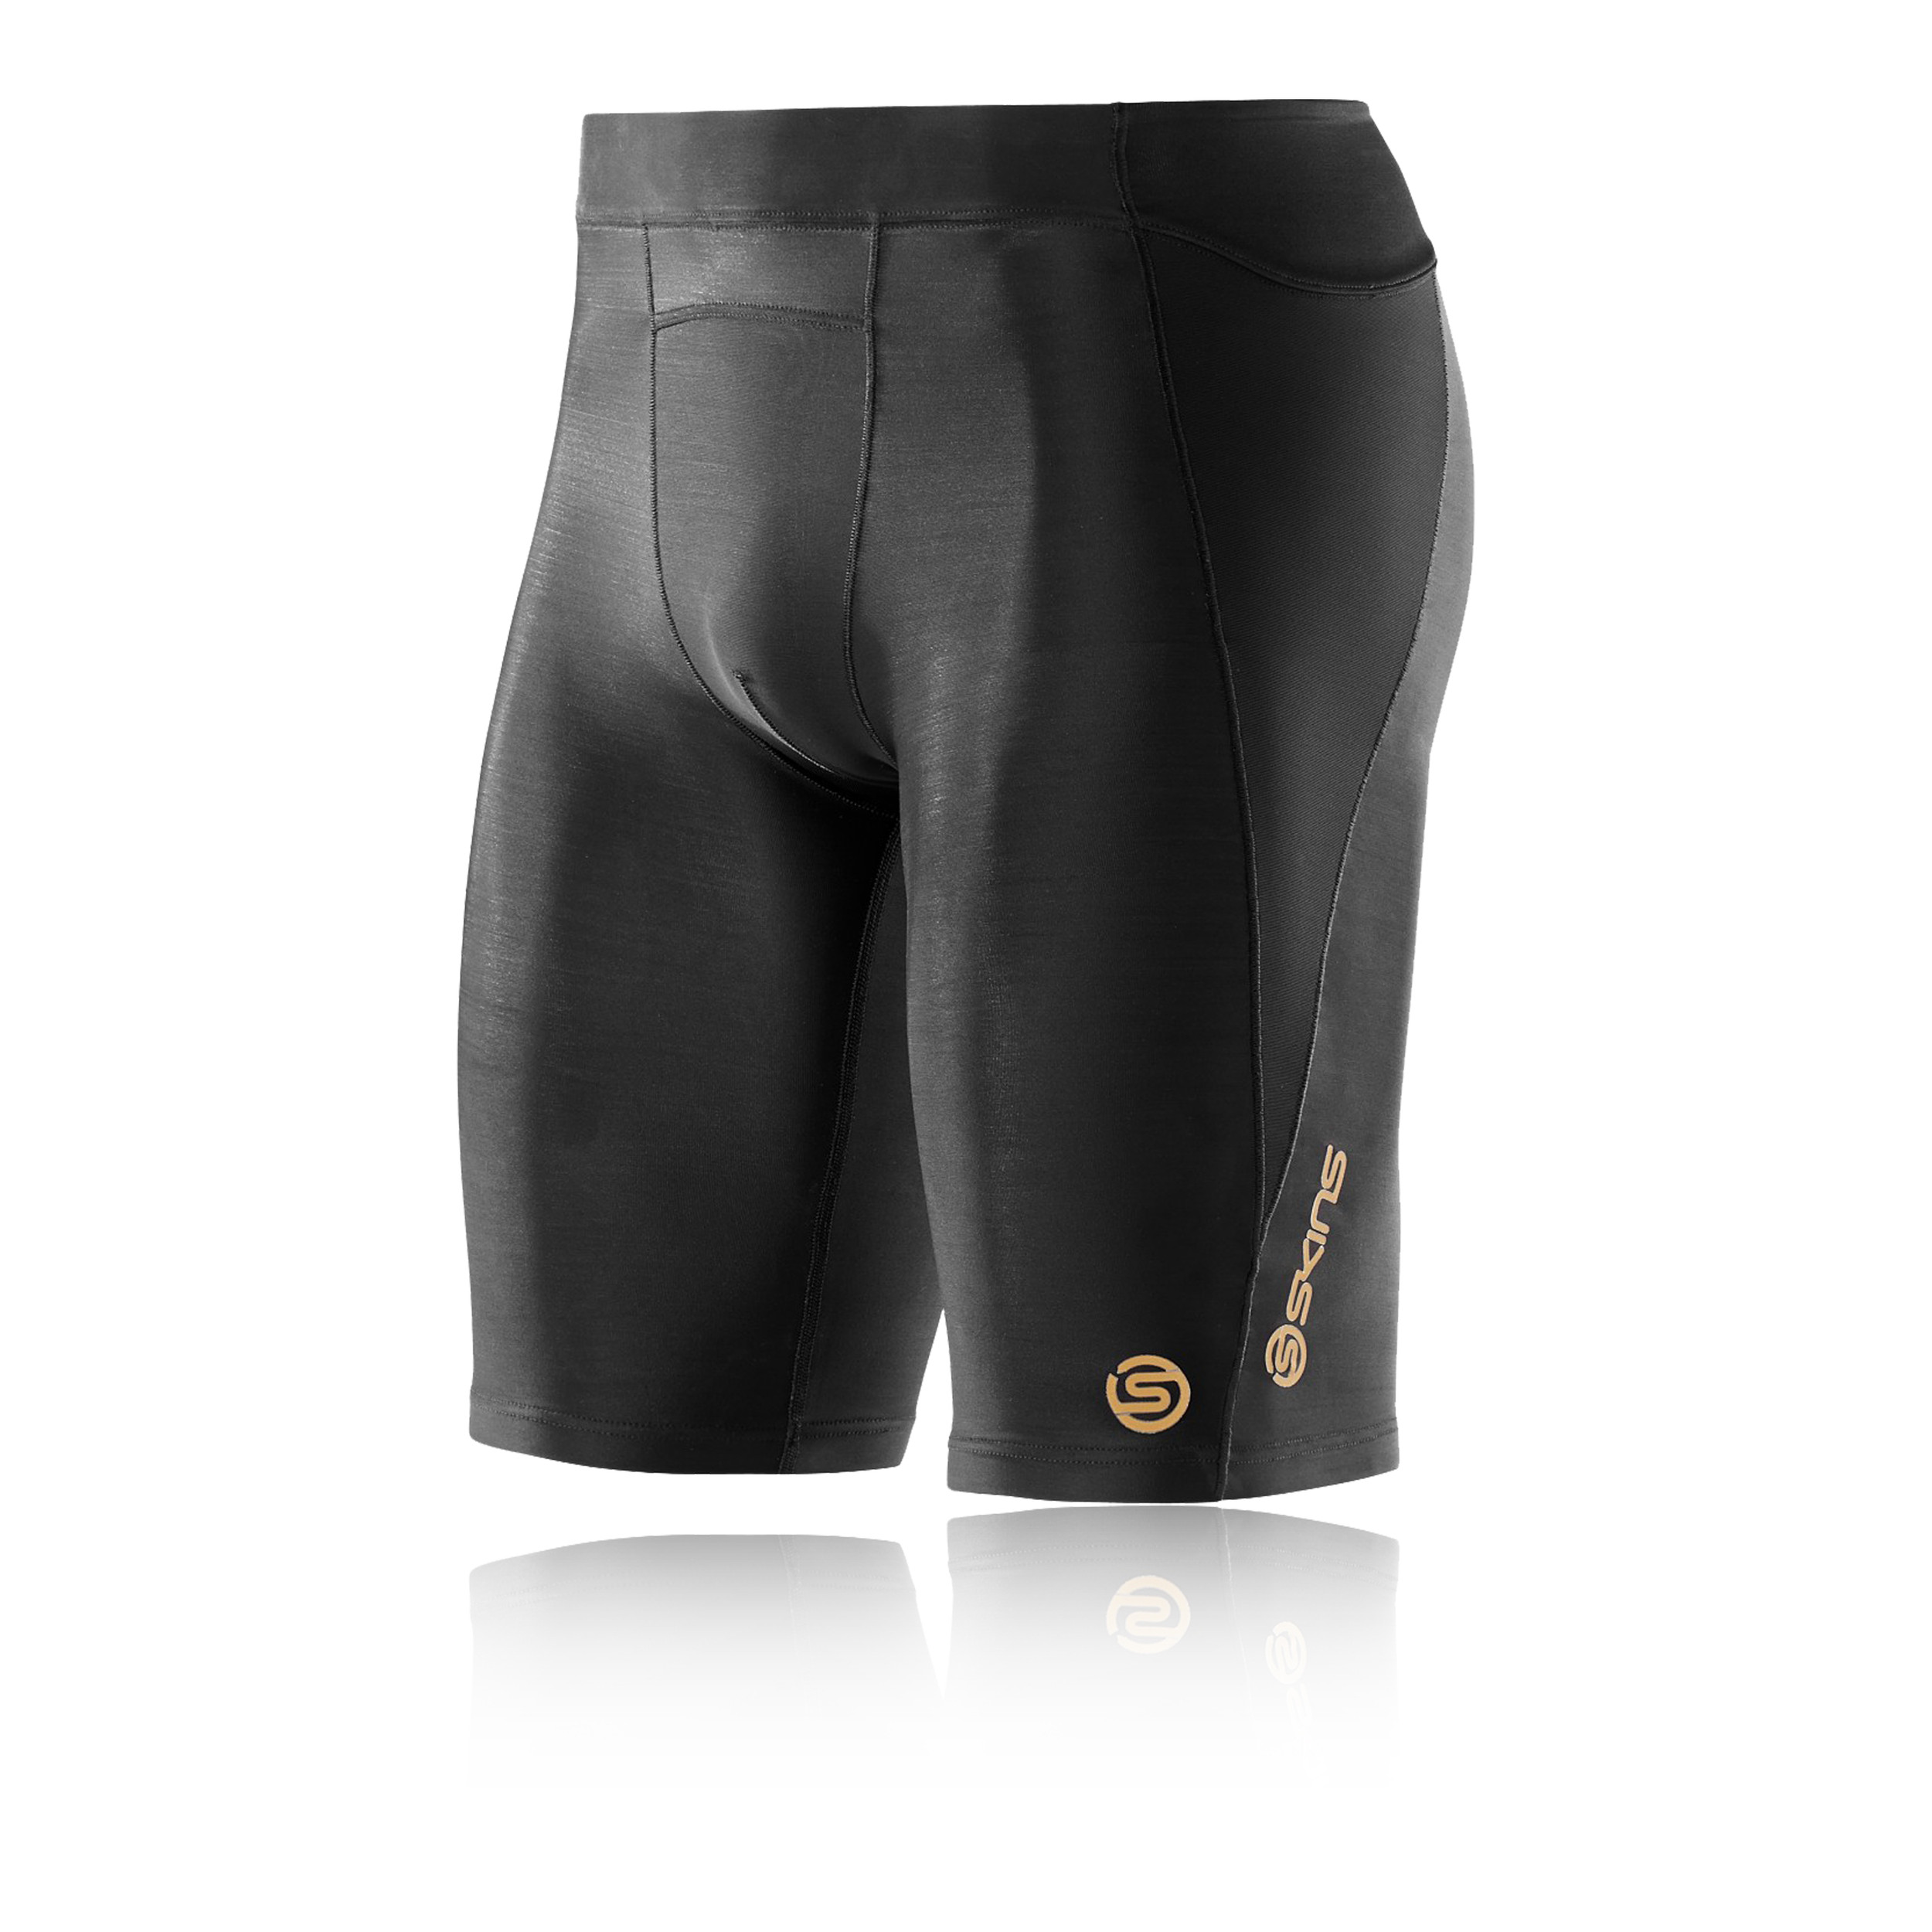 Skins Womens DNAmic Core Shorts Pants Trousers Bottoms Black Sports Gym Running